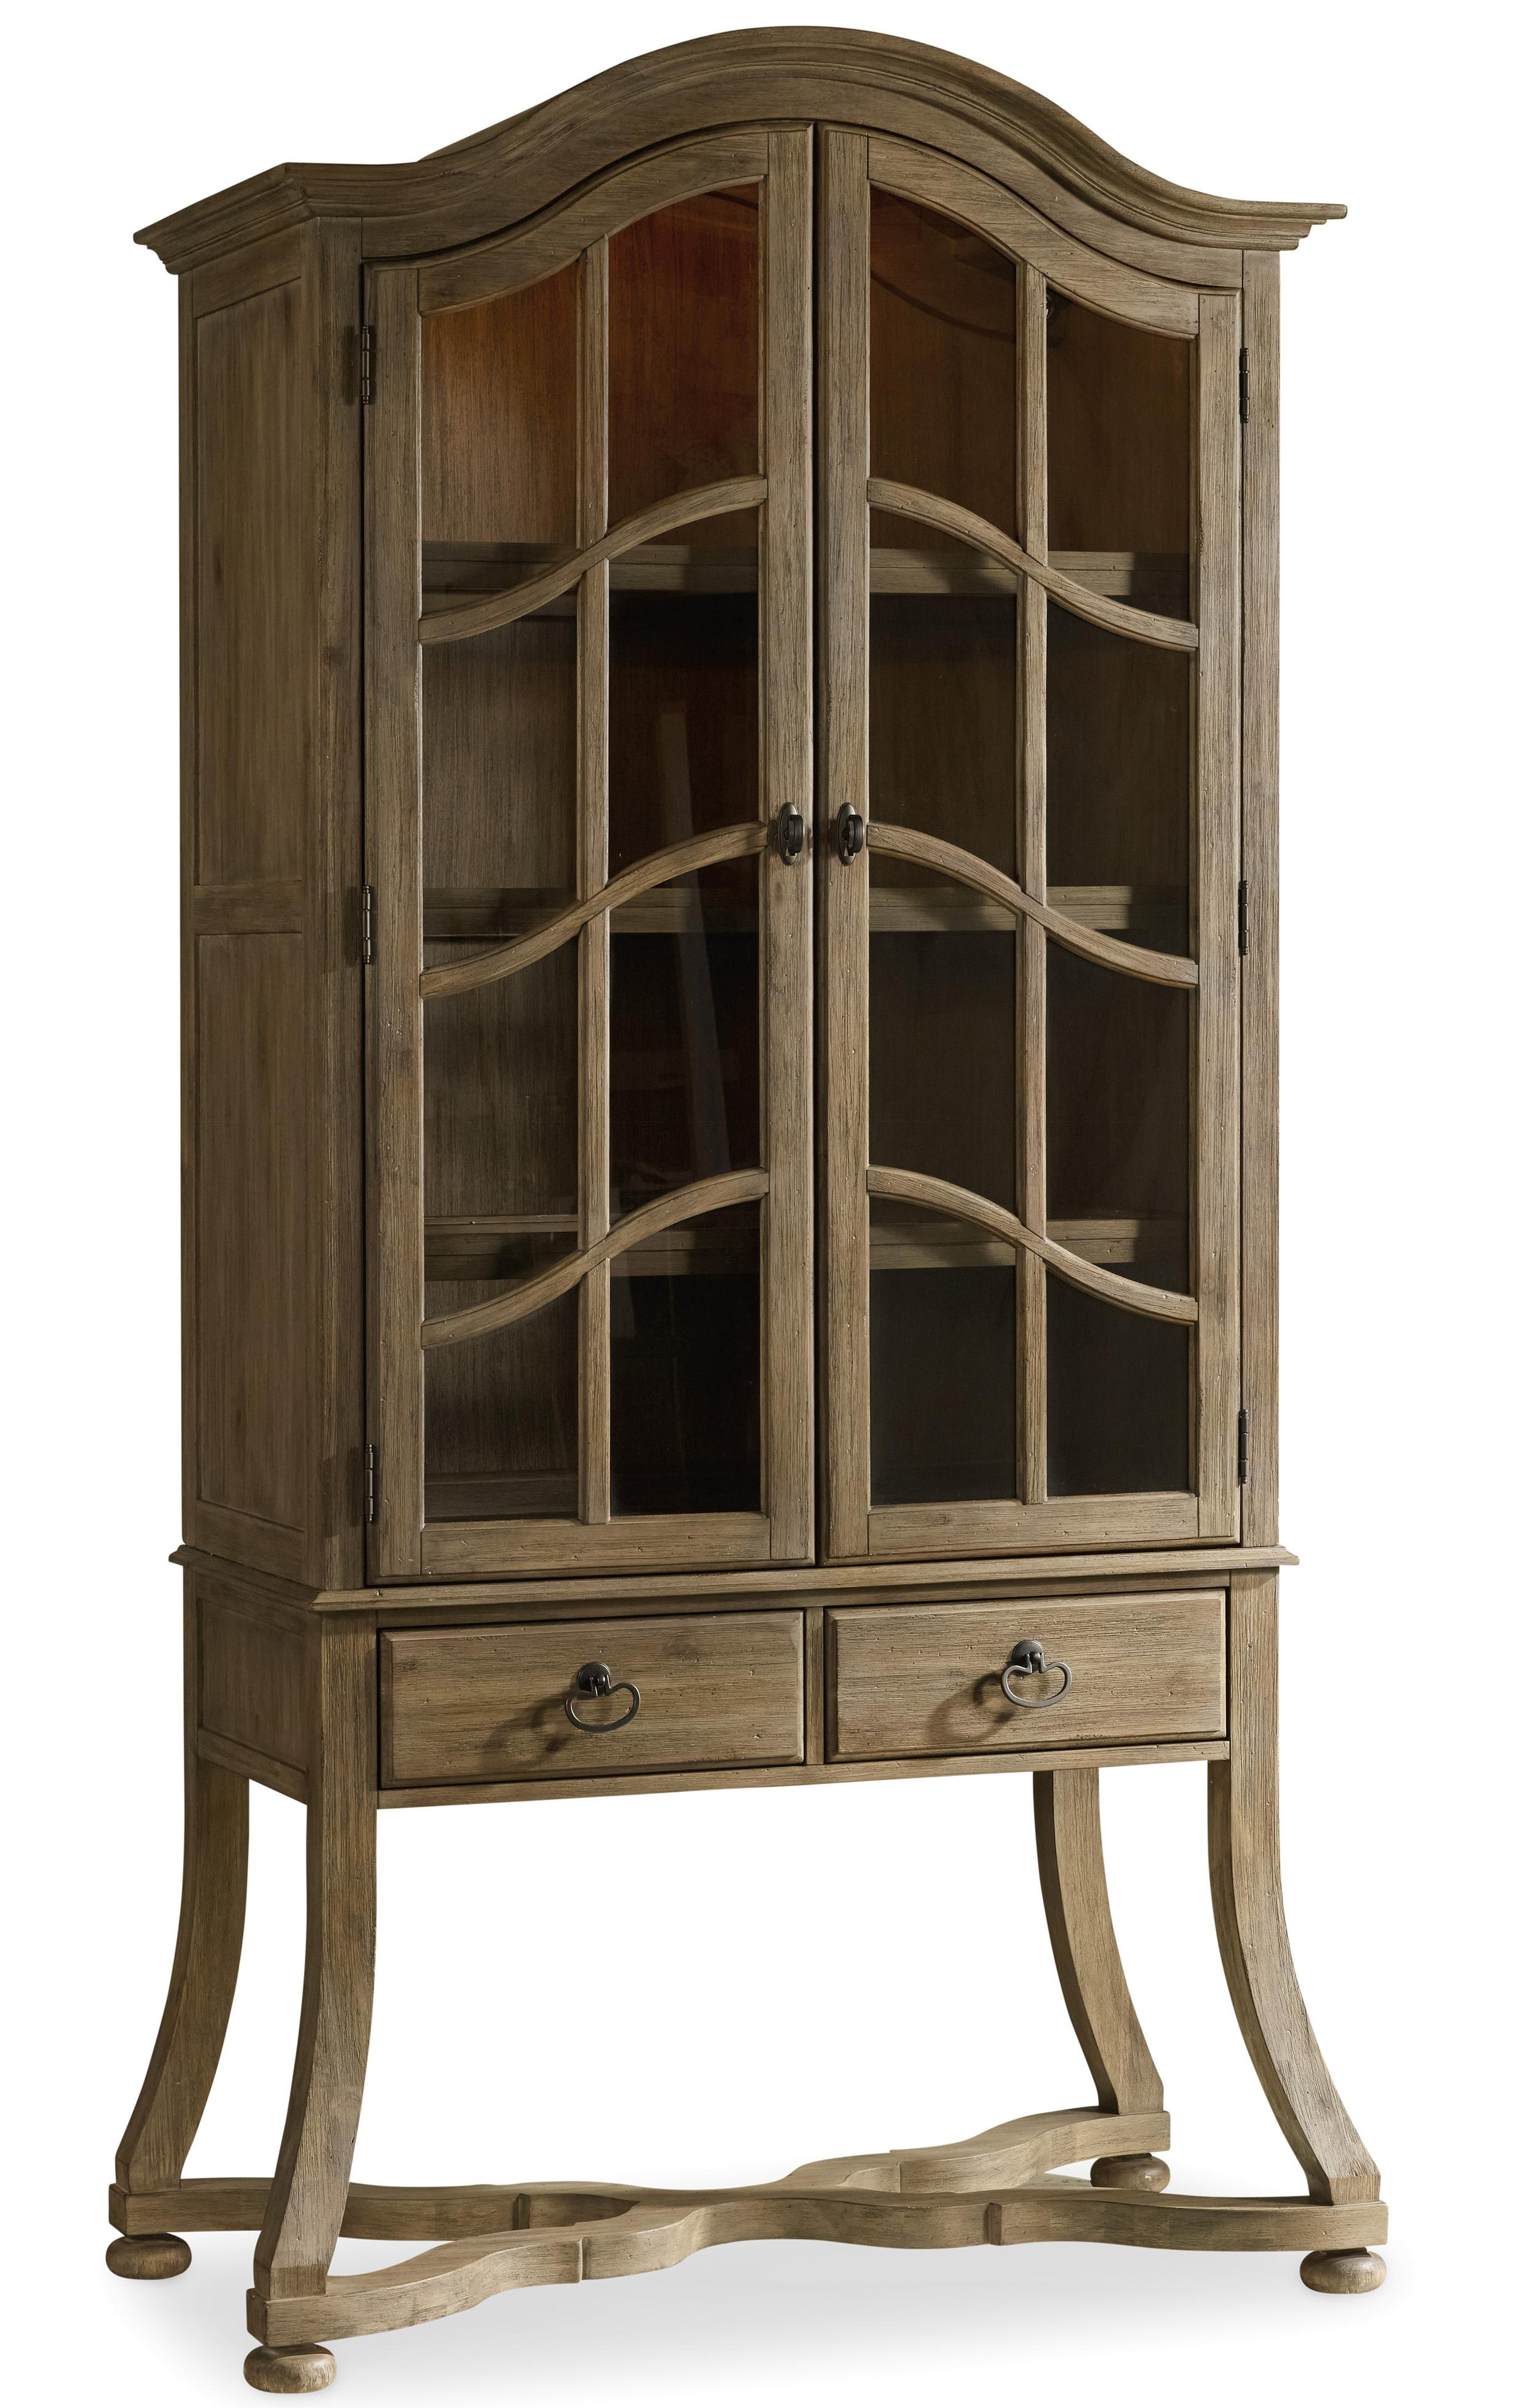 Hooker Furniture Corsica Display Cabinet - Item Number: 5180-75908